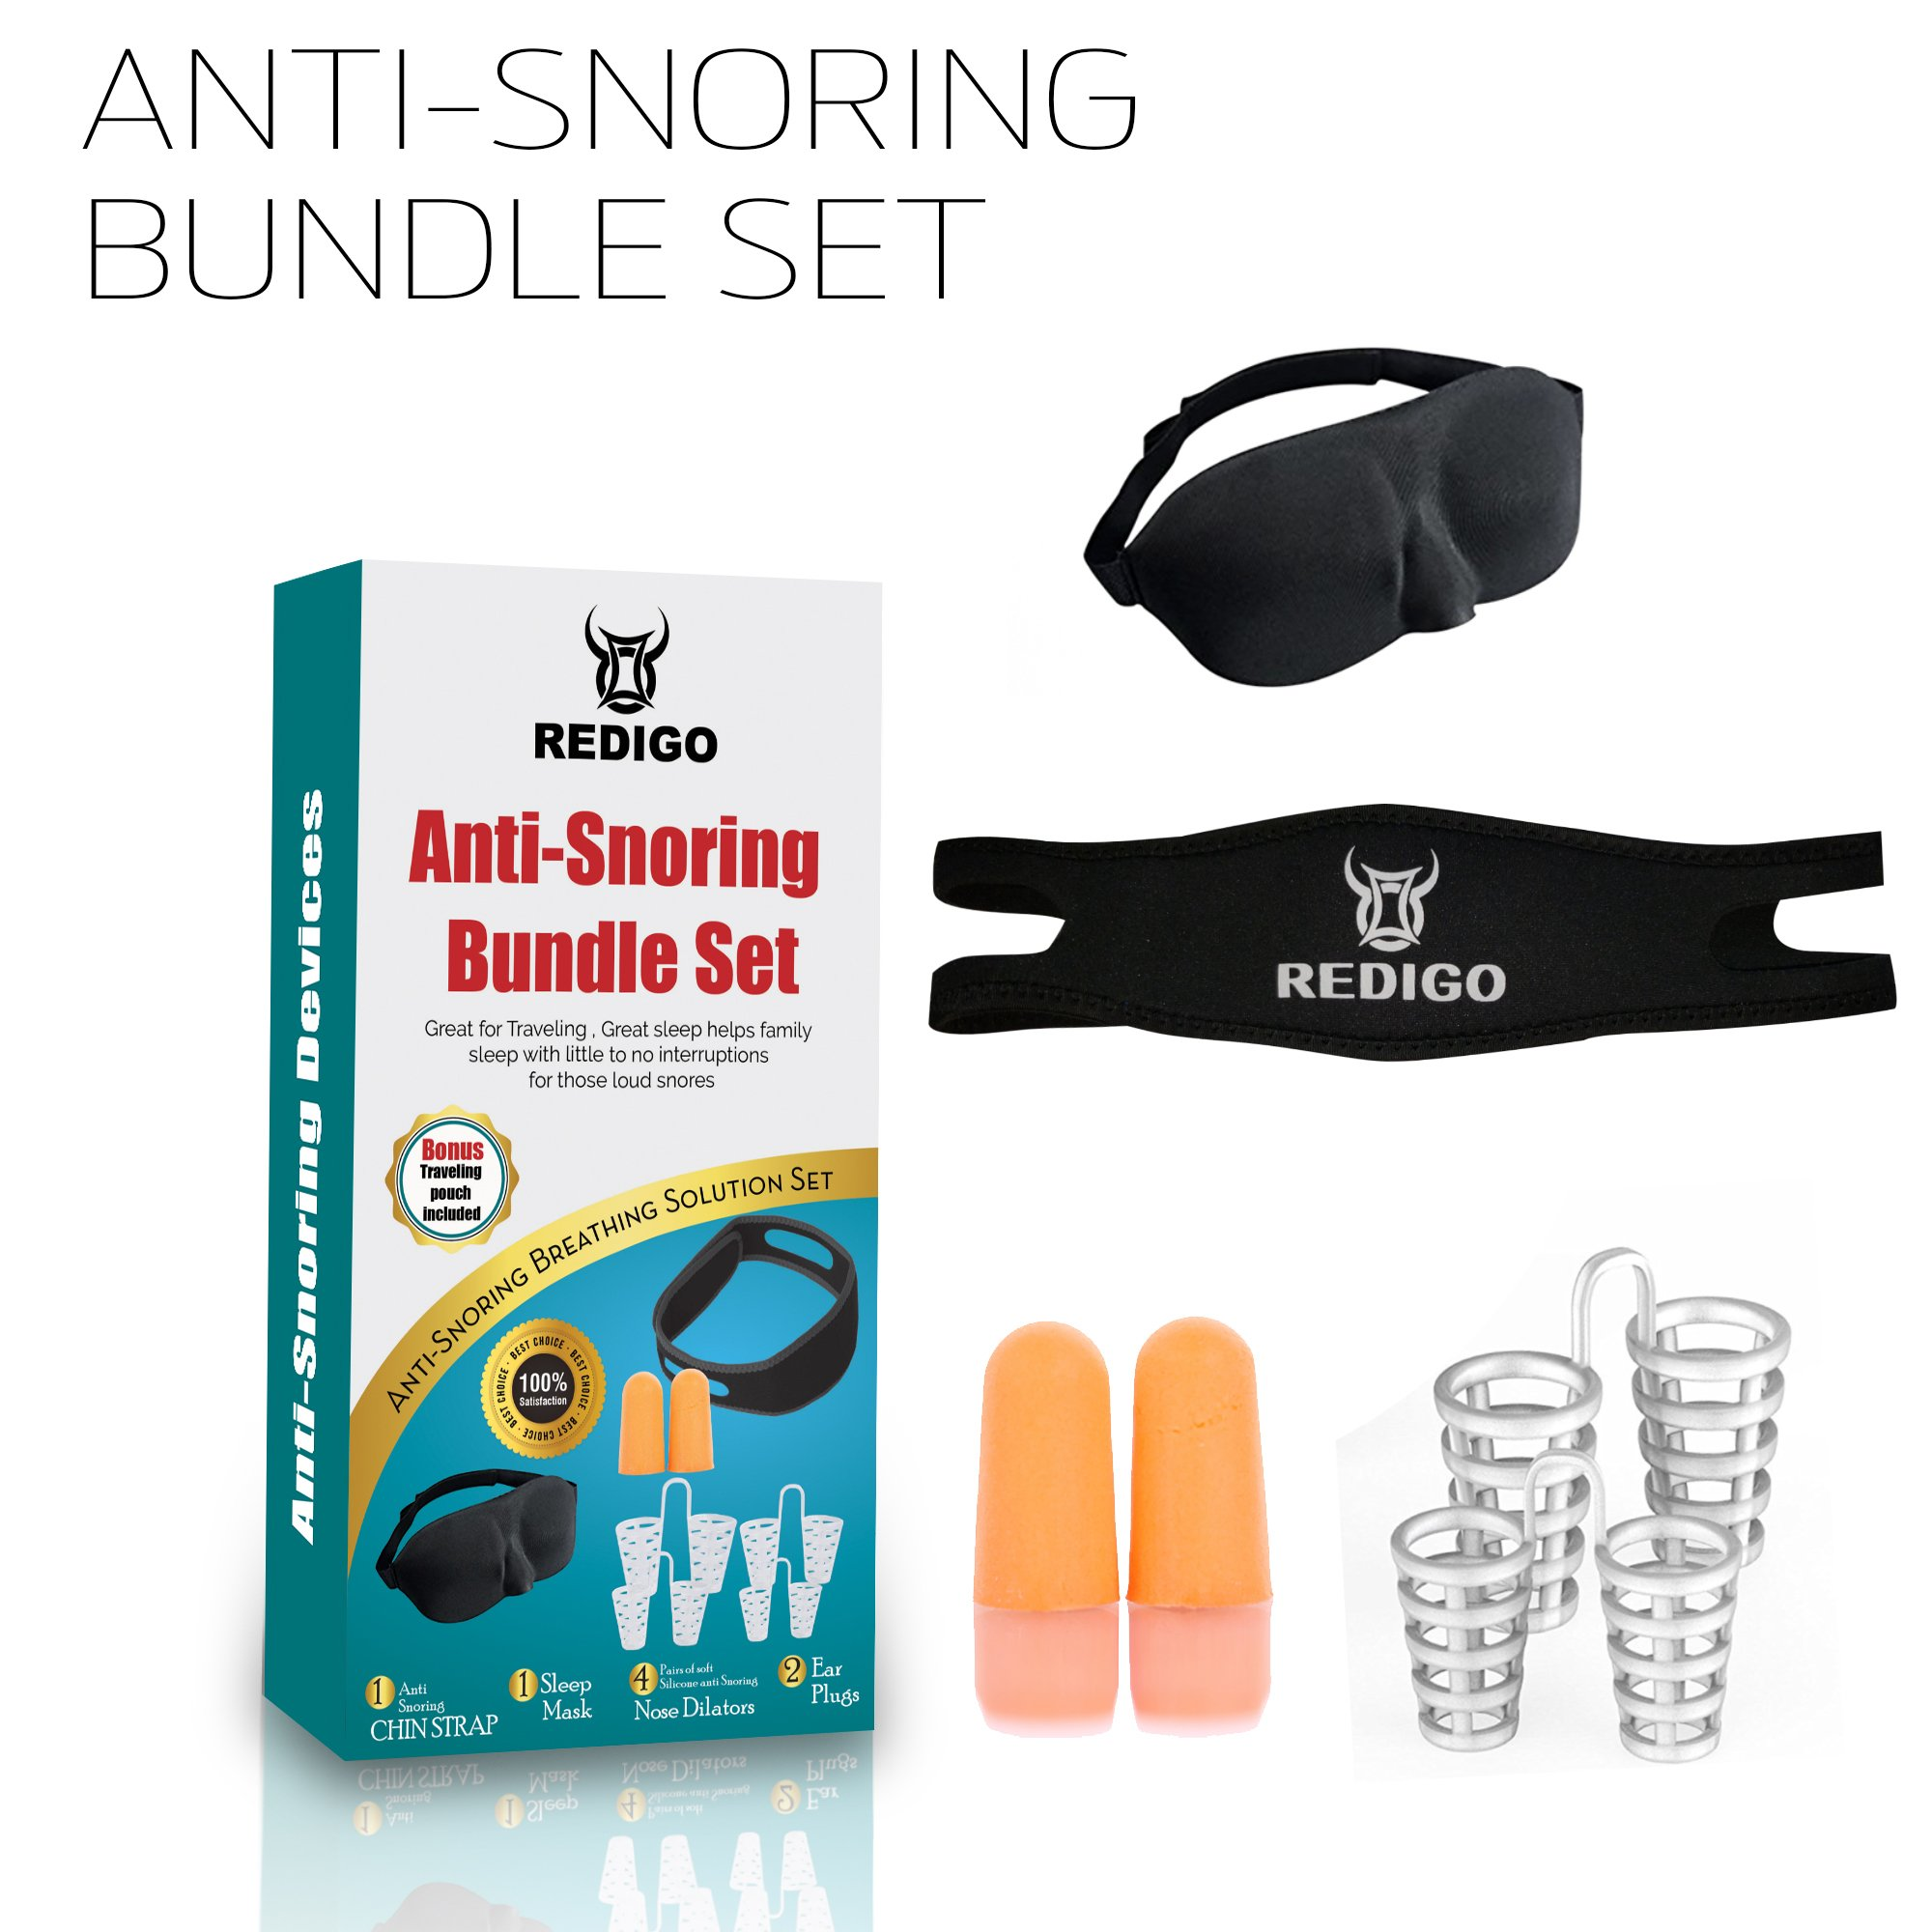 Redigo Anti-Snoring Devices Contoured Night Mask, Noise Cancelling Ear Plugs, Anti Snoring Chin Strap, Nose Vents & Travel Pouch – Relaxing Solution for Better Sleep